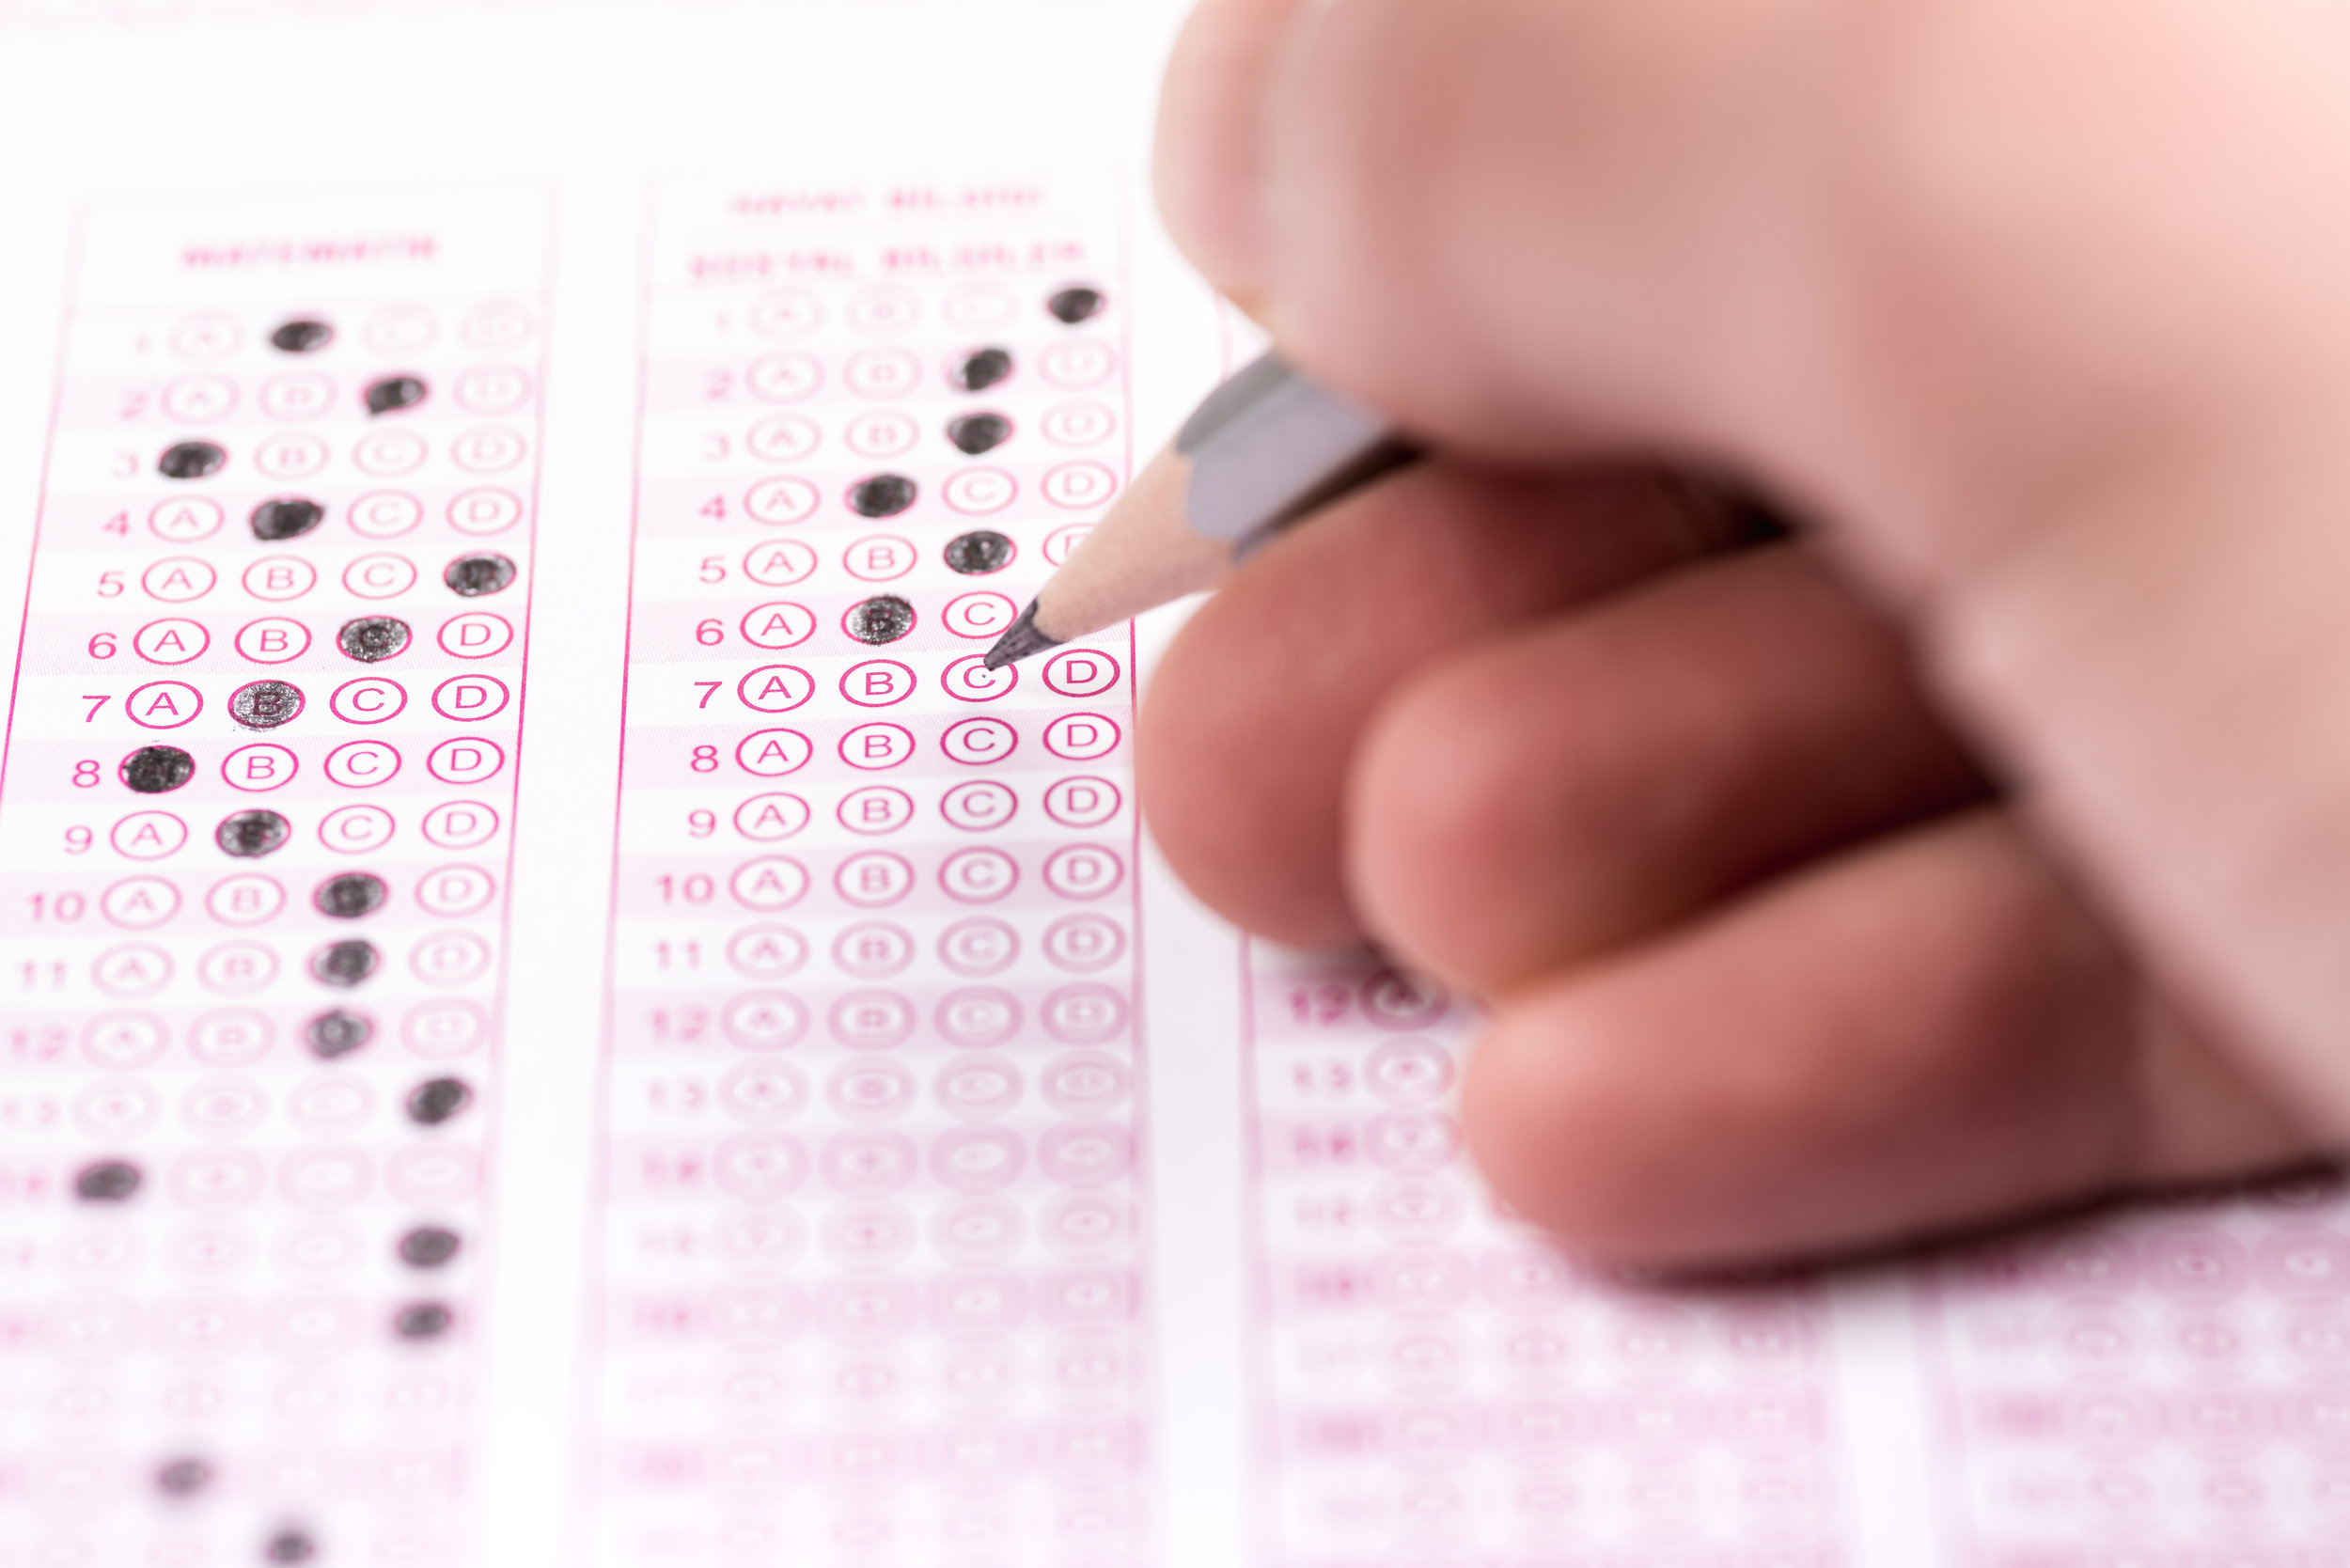 Test Prep Services for SAT®, ACT®, GRE®, MCAT®